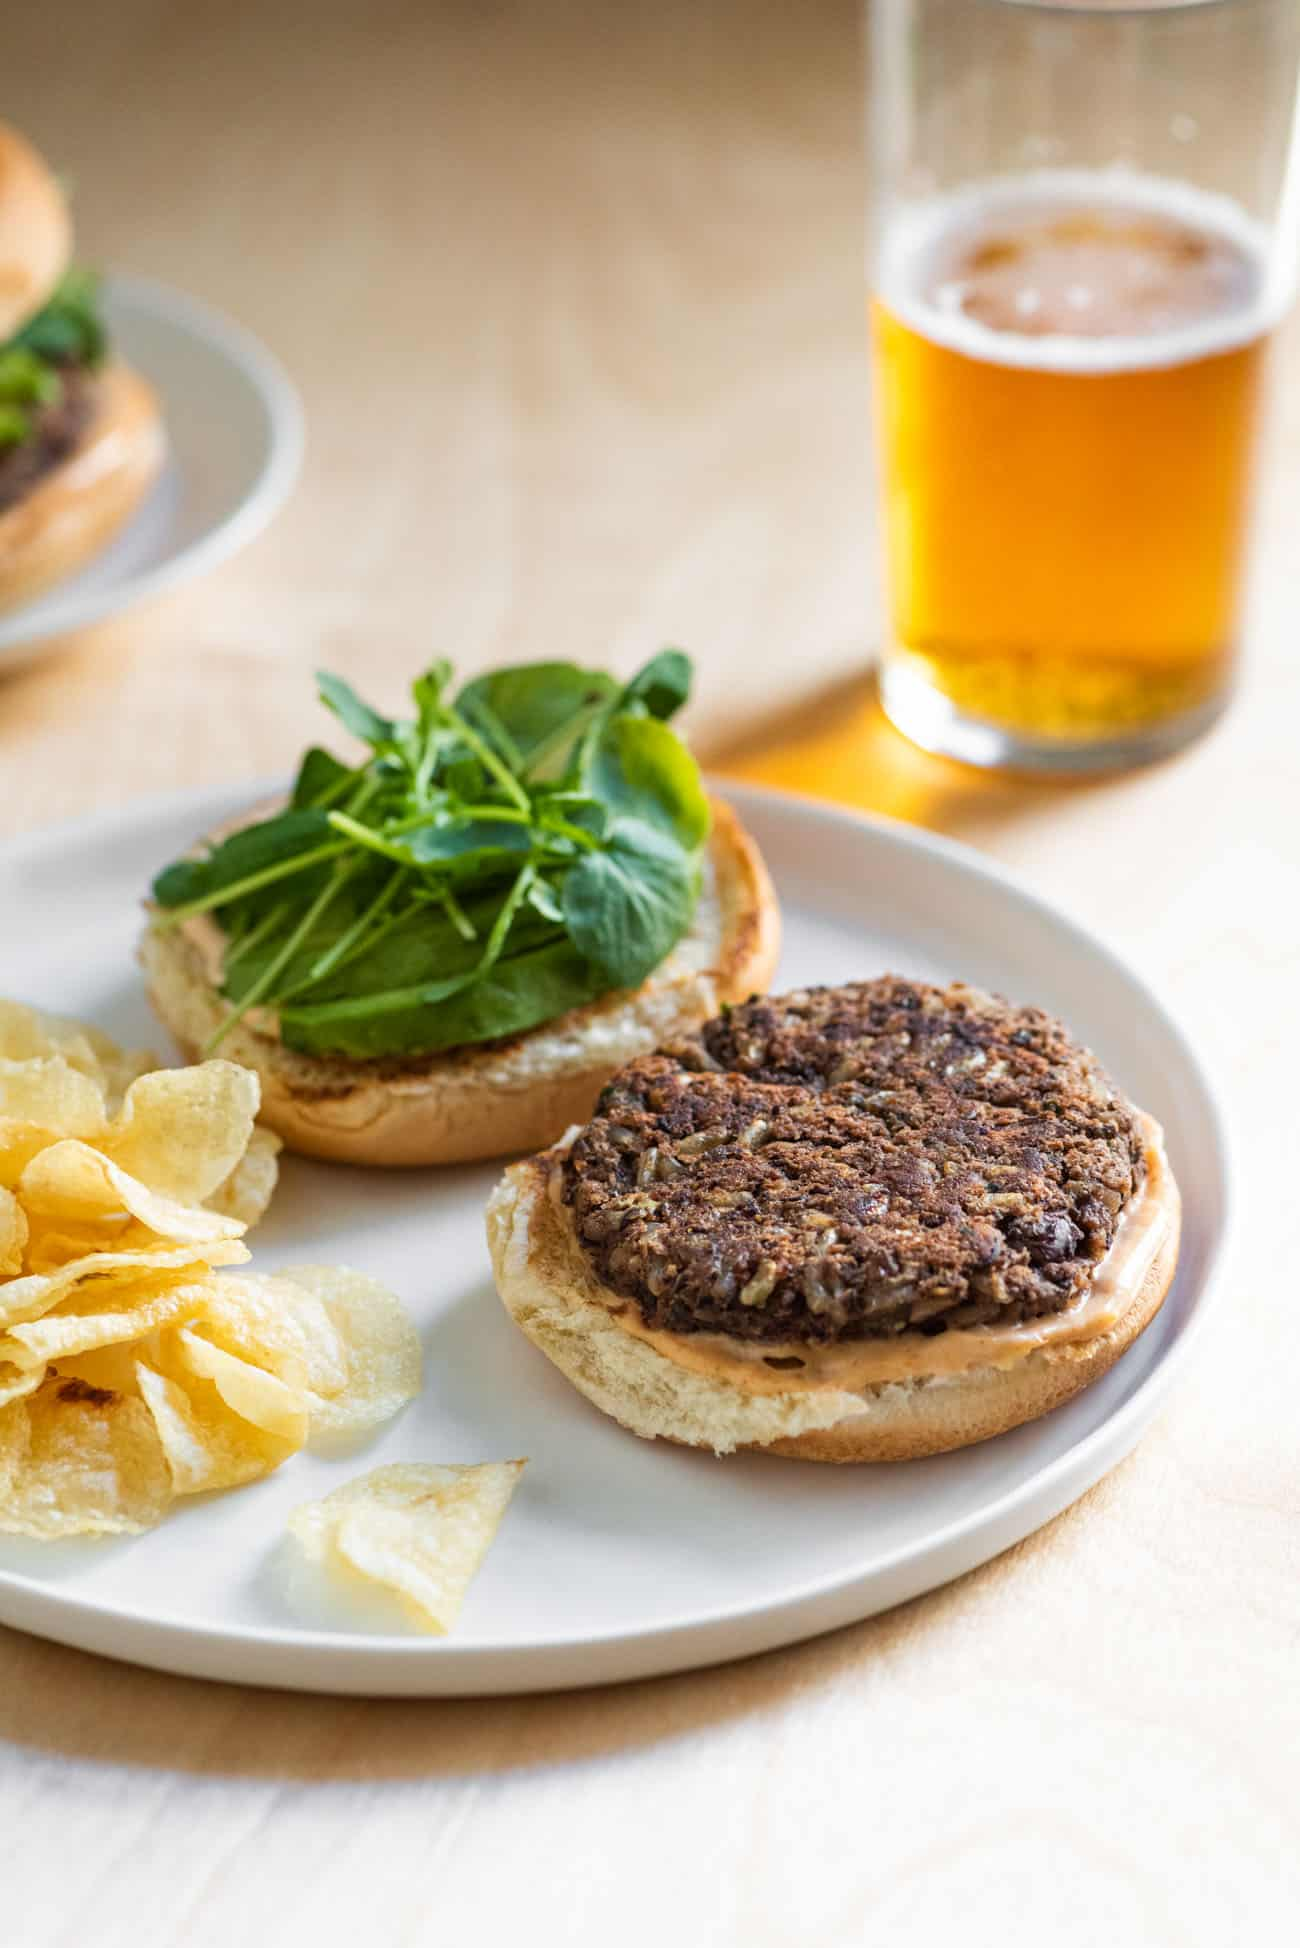 An open-faced vegan black bean burger with watercress, with potato chips on the side and a glass of beer